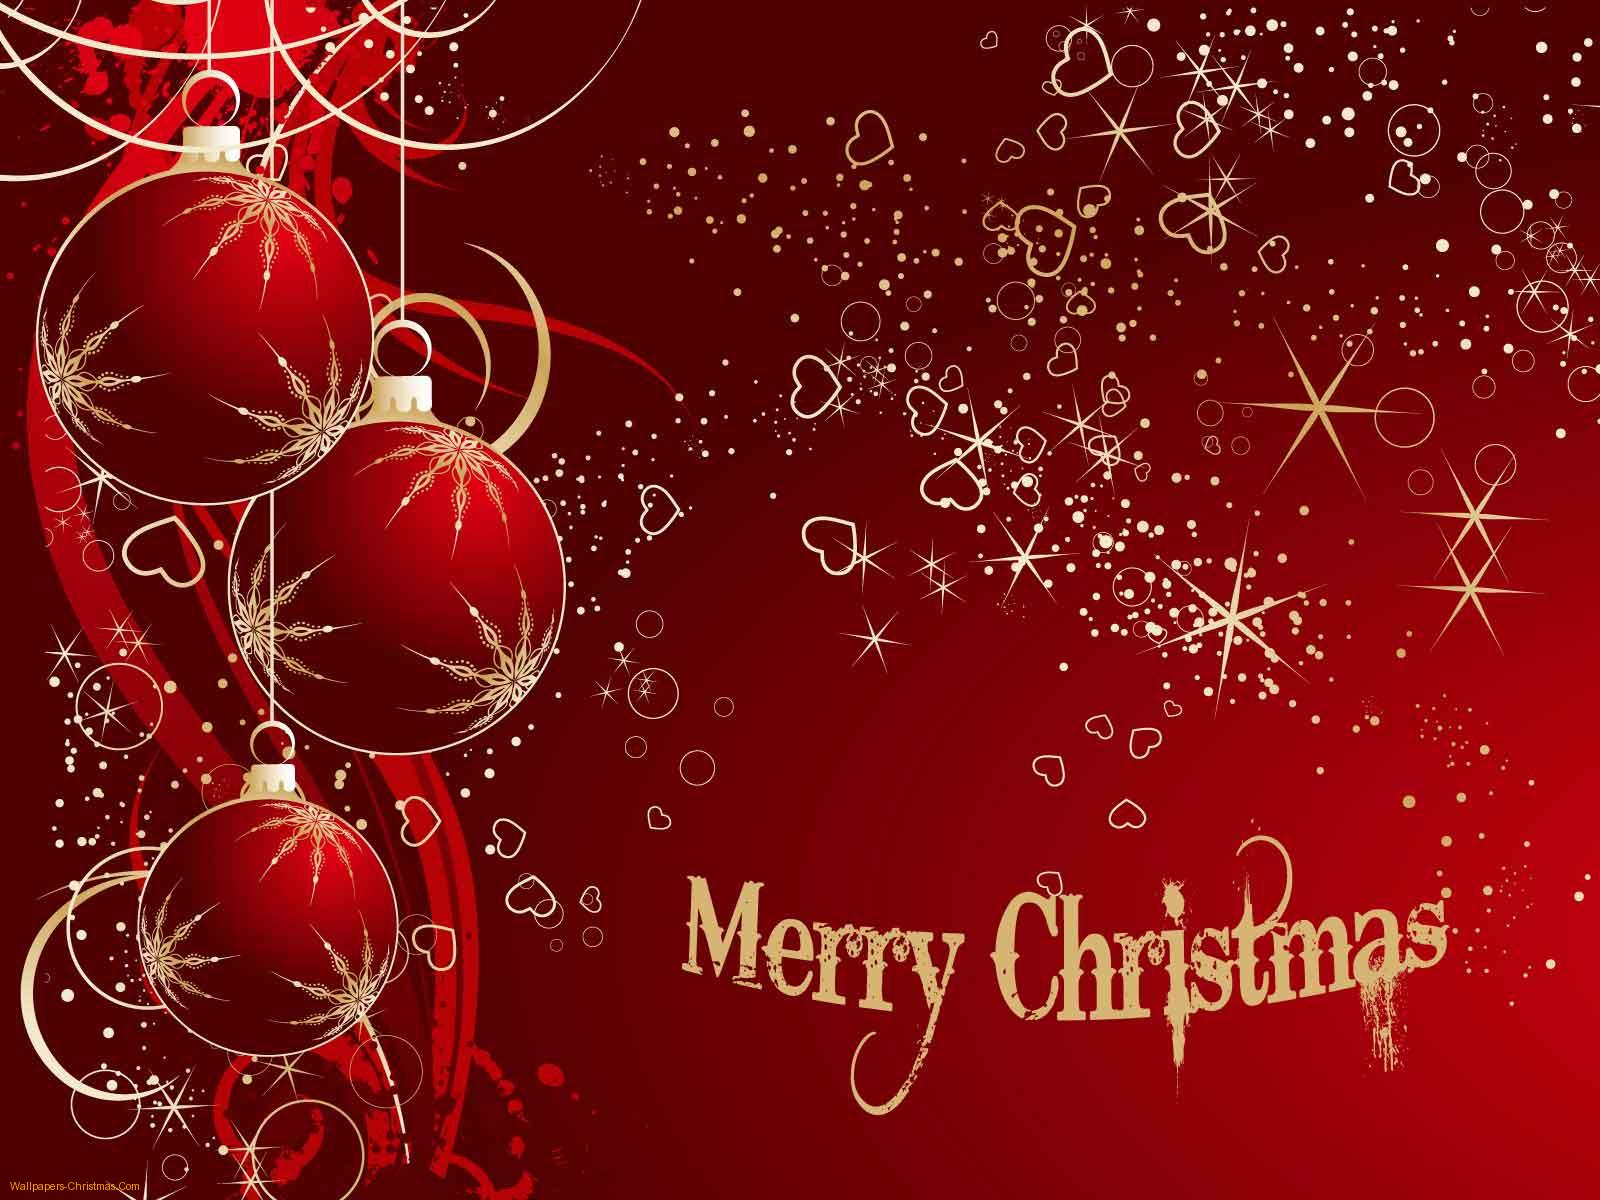 pc backgrounds : merry xmas wallpapers merry xmas marry christmas